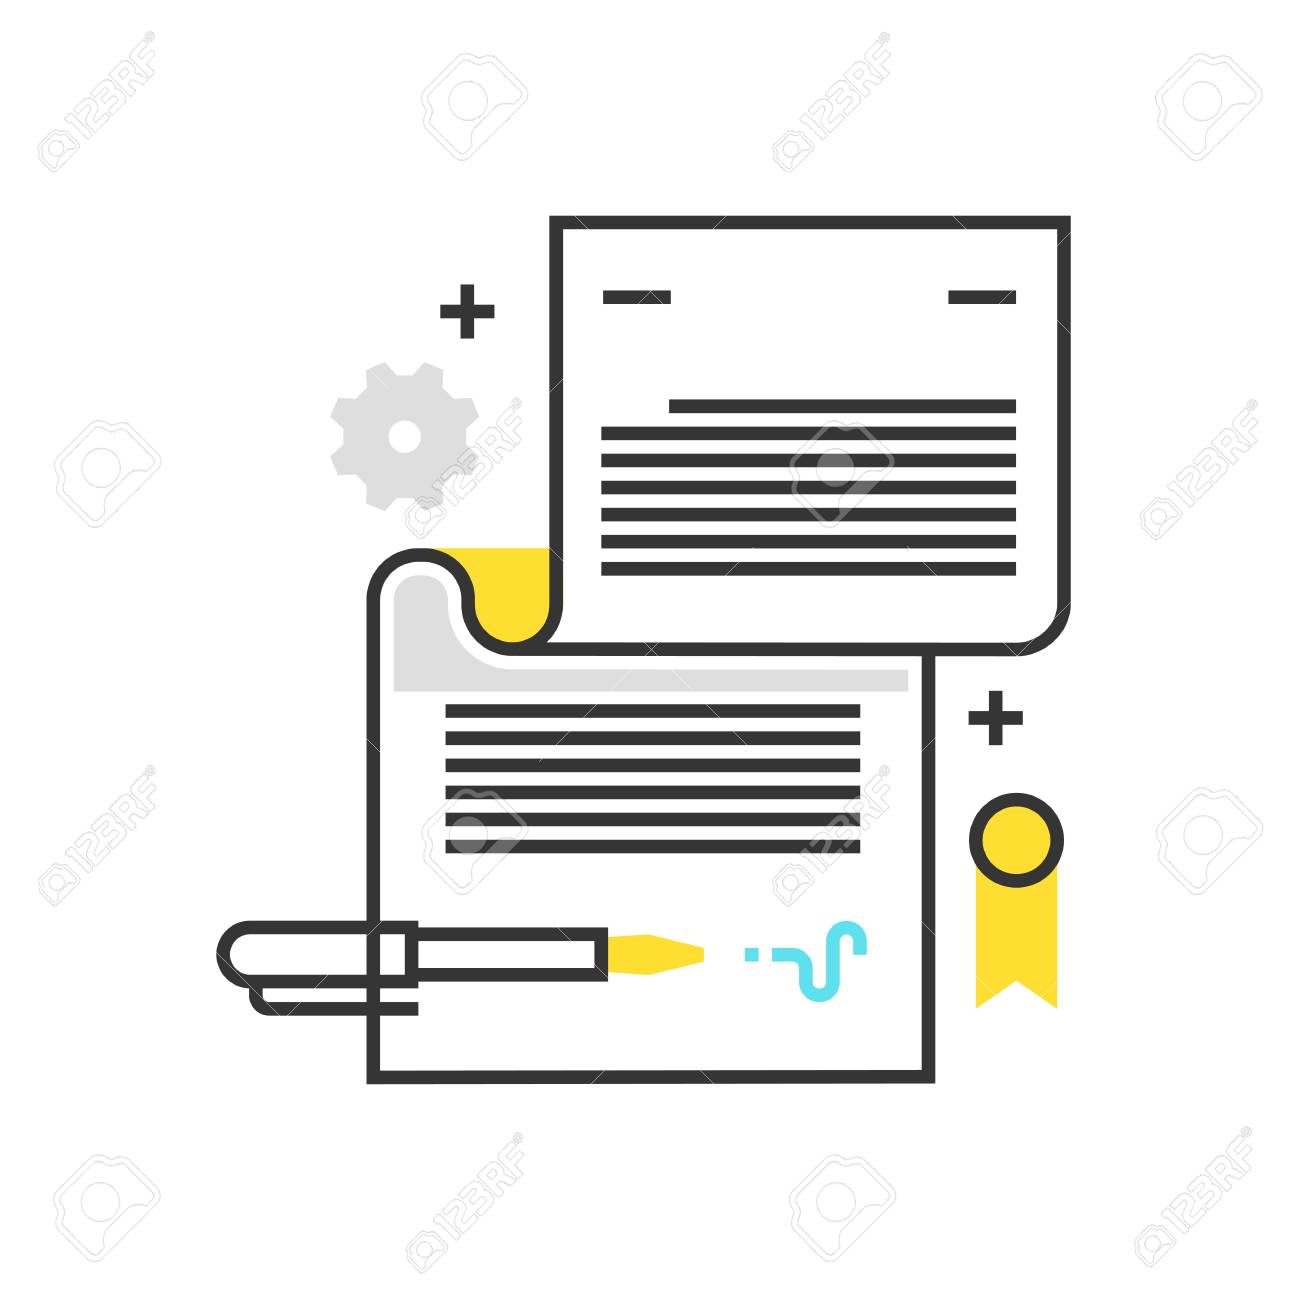 Color Box Icon Legal Documents Concept Illustration Background And Graphics The